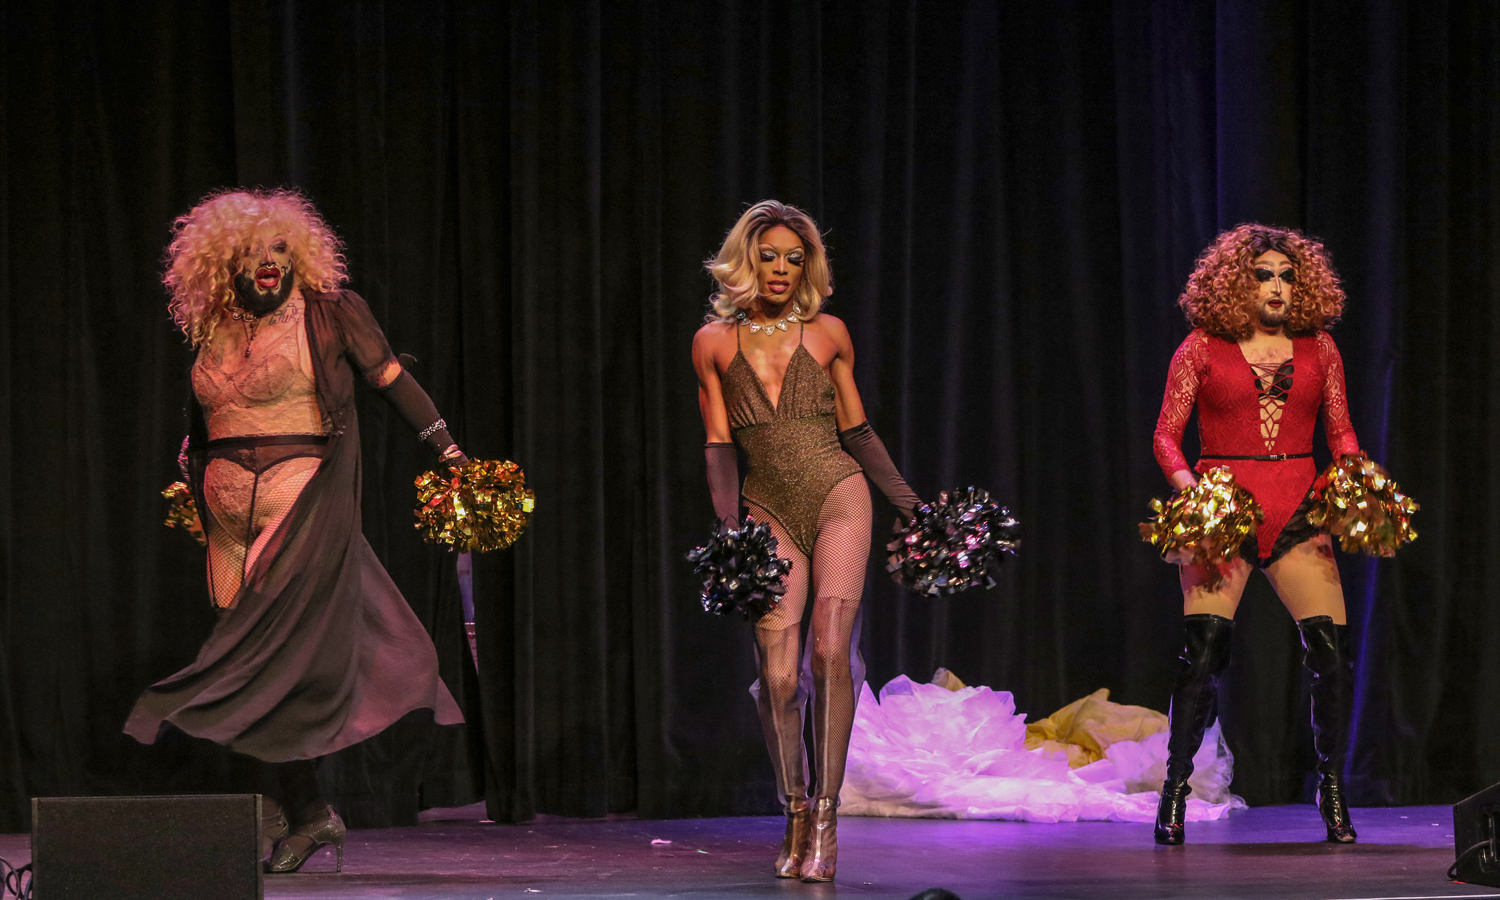 Drag queens from the Haus of Ungodly, a drag queen group, perform before the show. Joshua Giron | Staff Photographer